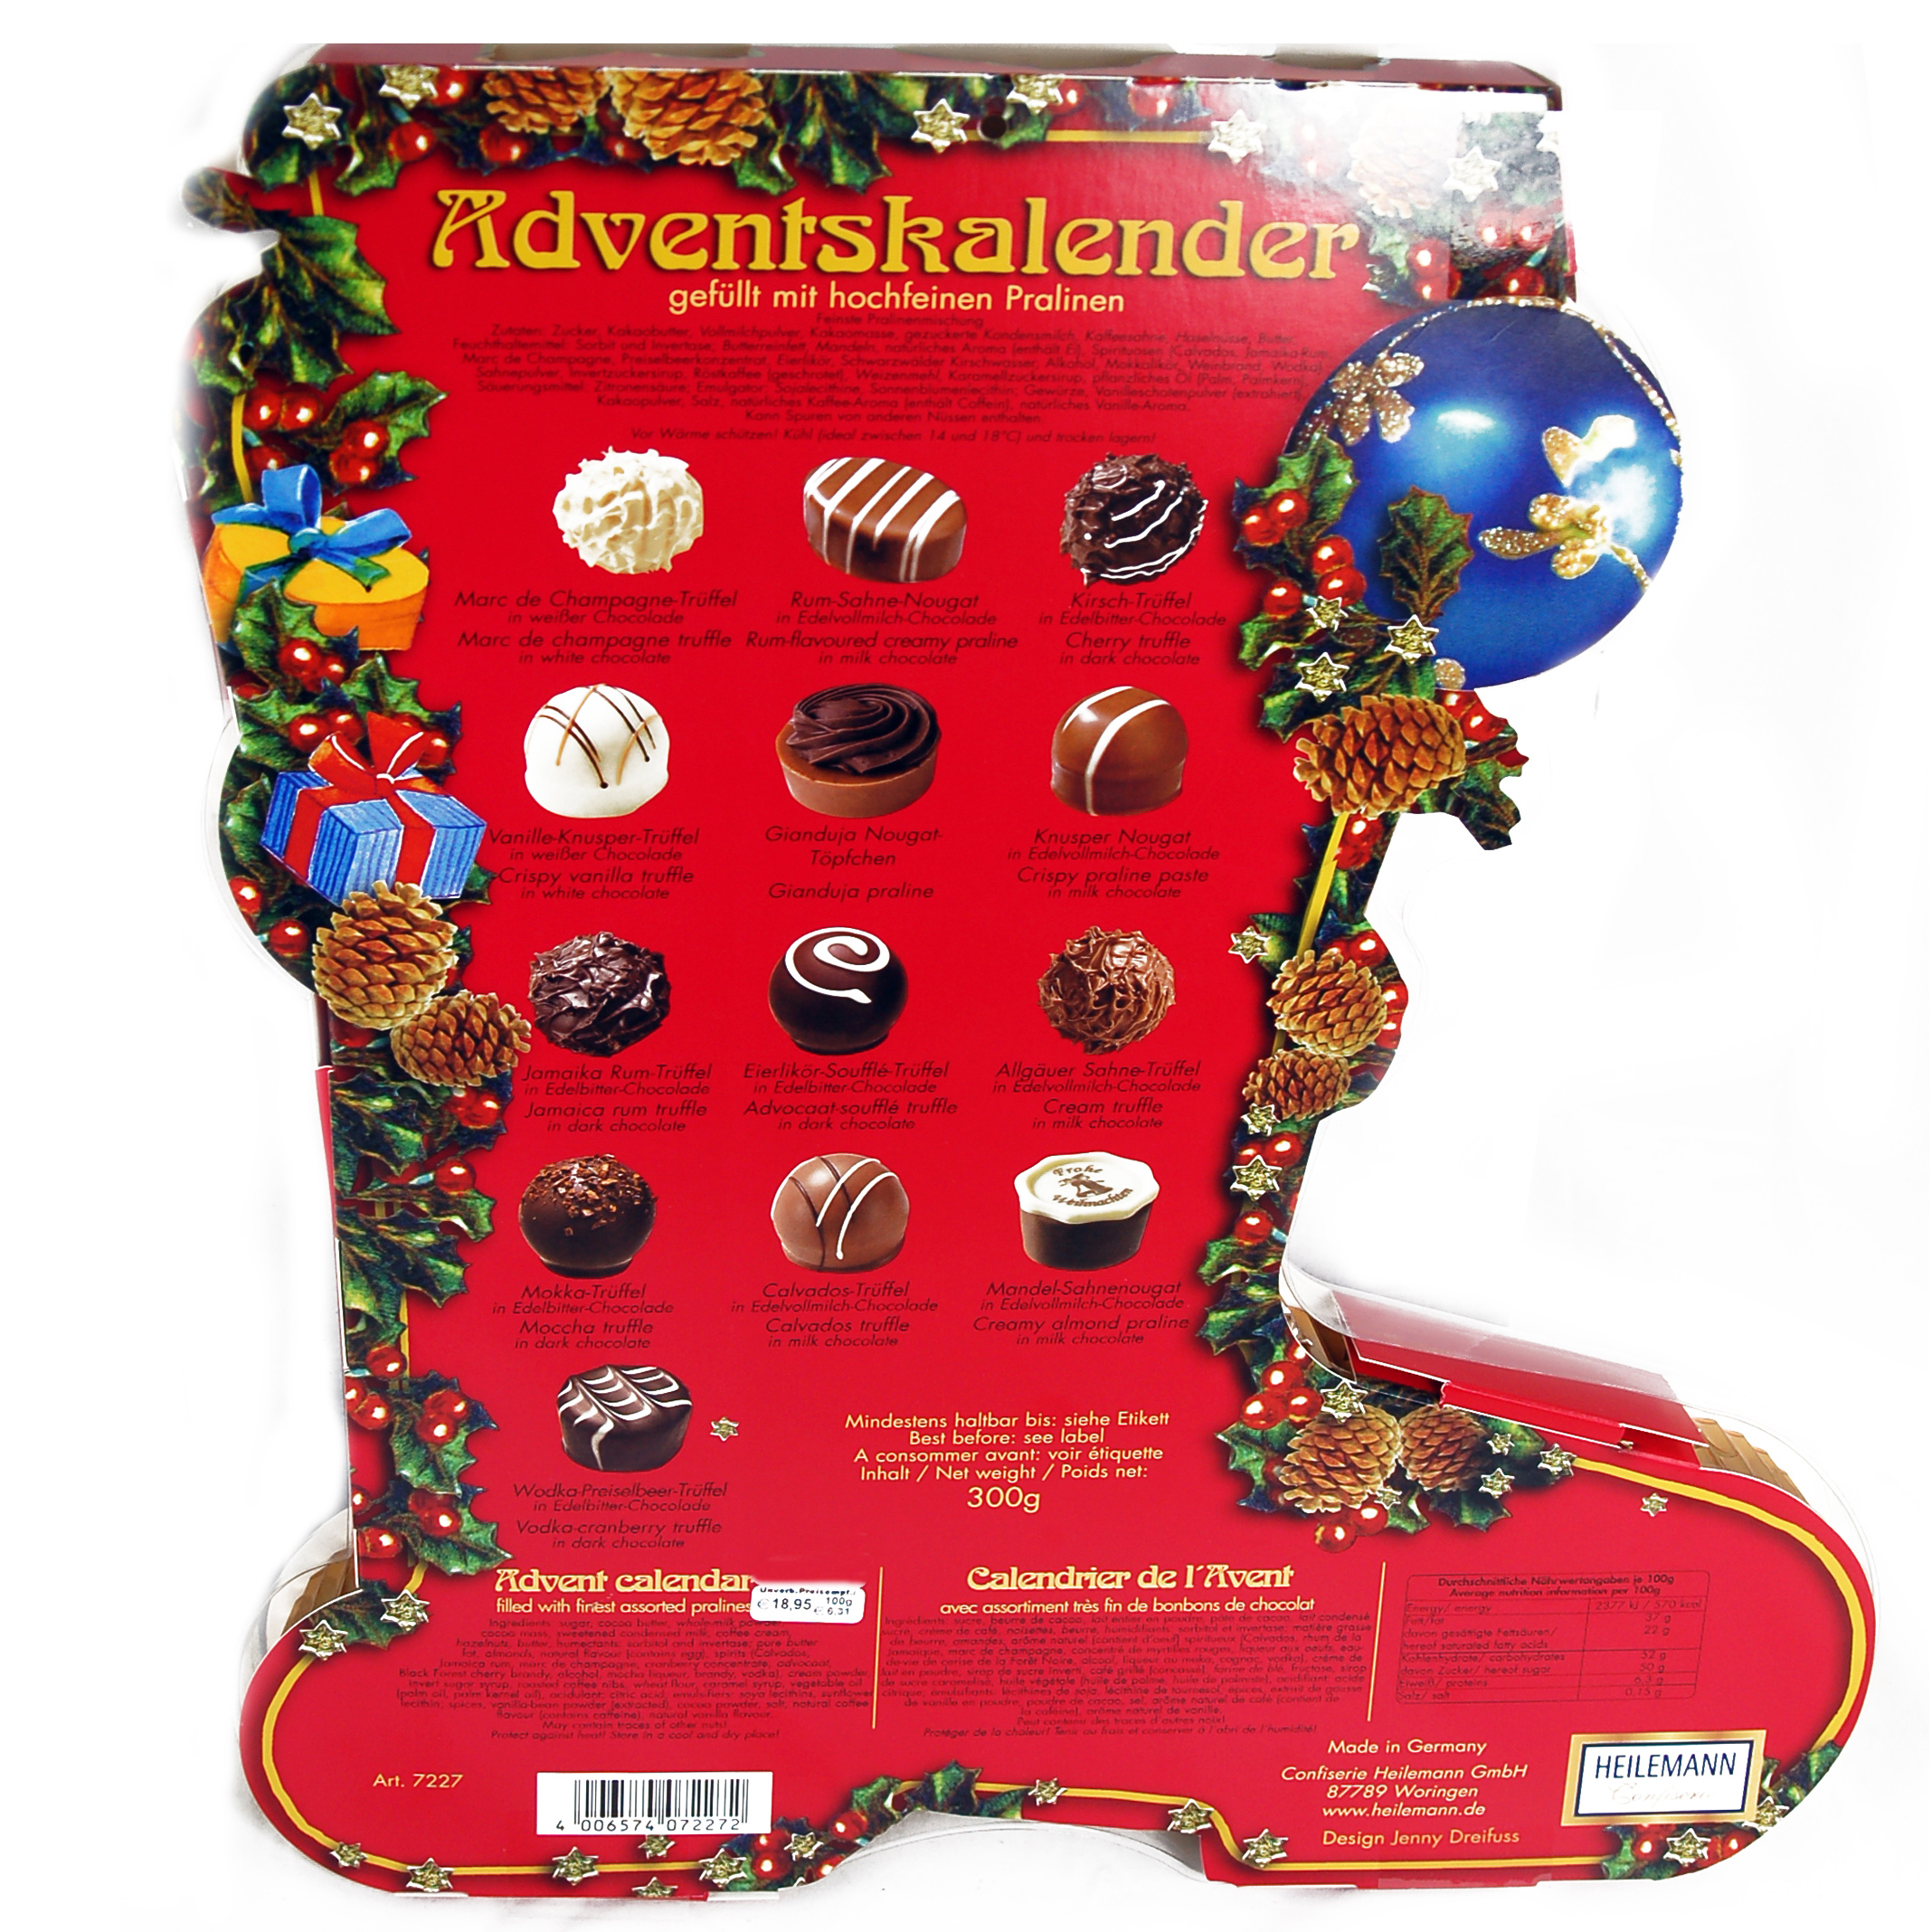 heilemann pralinen adventskalender stiefel online kaufen im world of sweets shop. Black Bedroom Furniture Sets. Home Design Ideas